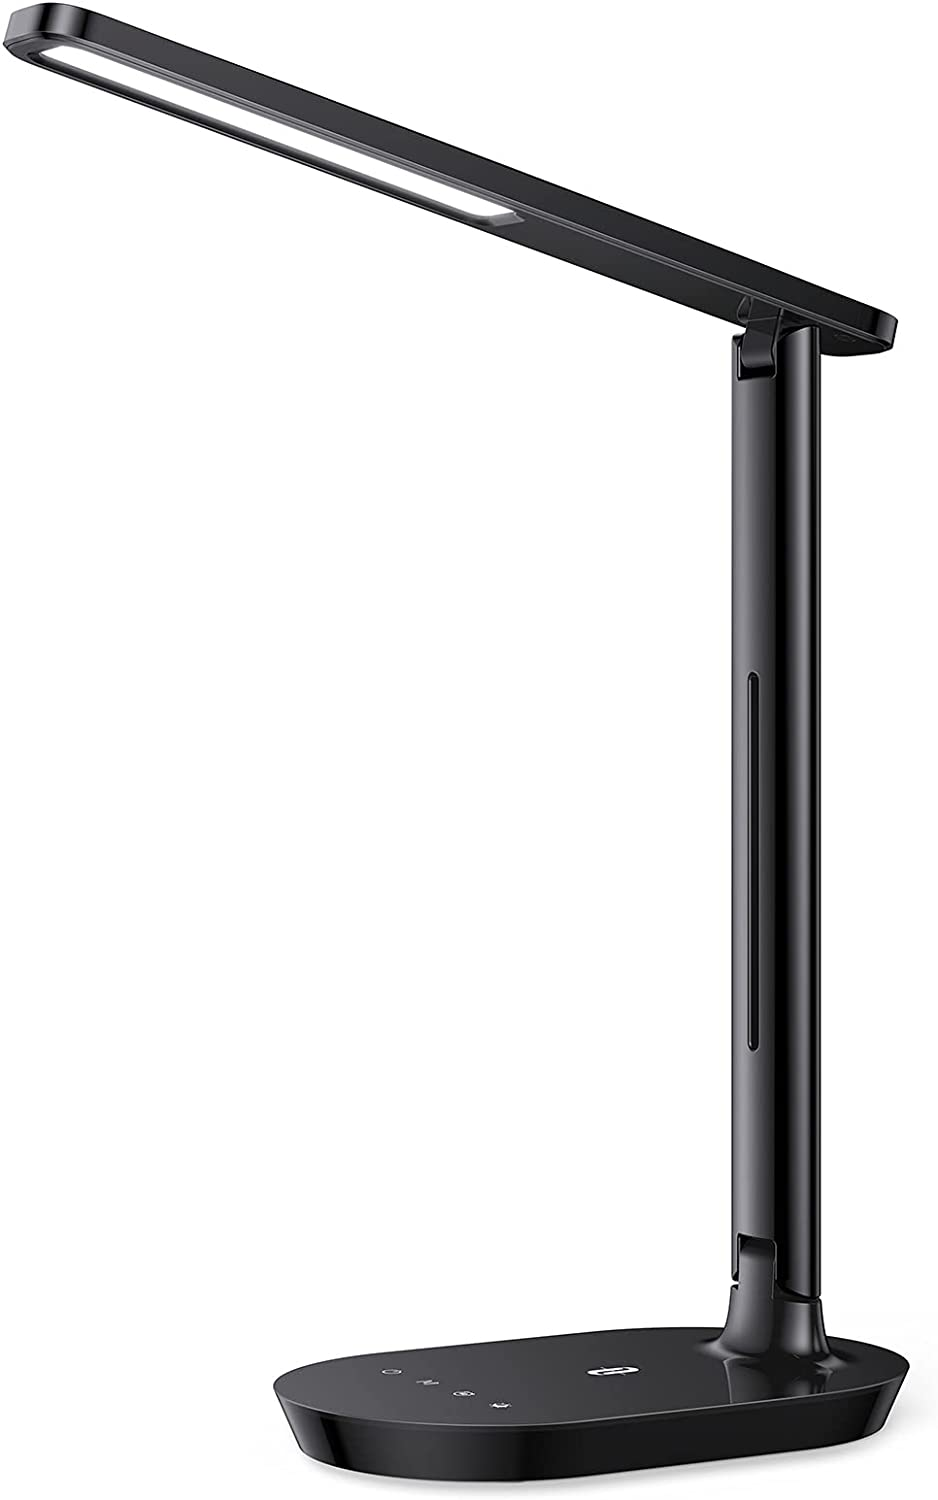 TaoTronics LED Desk Lamp, Dimmable Desk Lamp with 5 Lighting Levels 3 Color Modes Eye-Caring Table Lamp, Touch Control Memory Function for Living Room Office Bedroom, Black